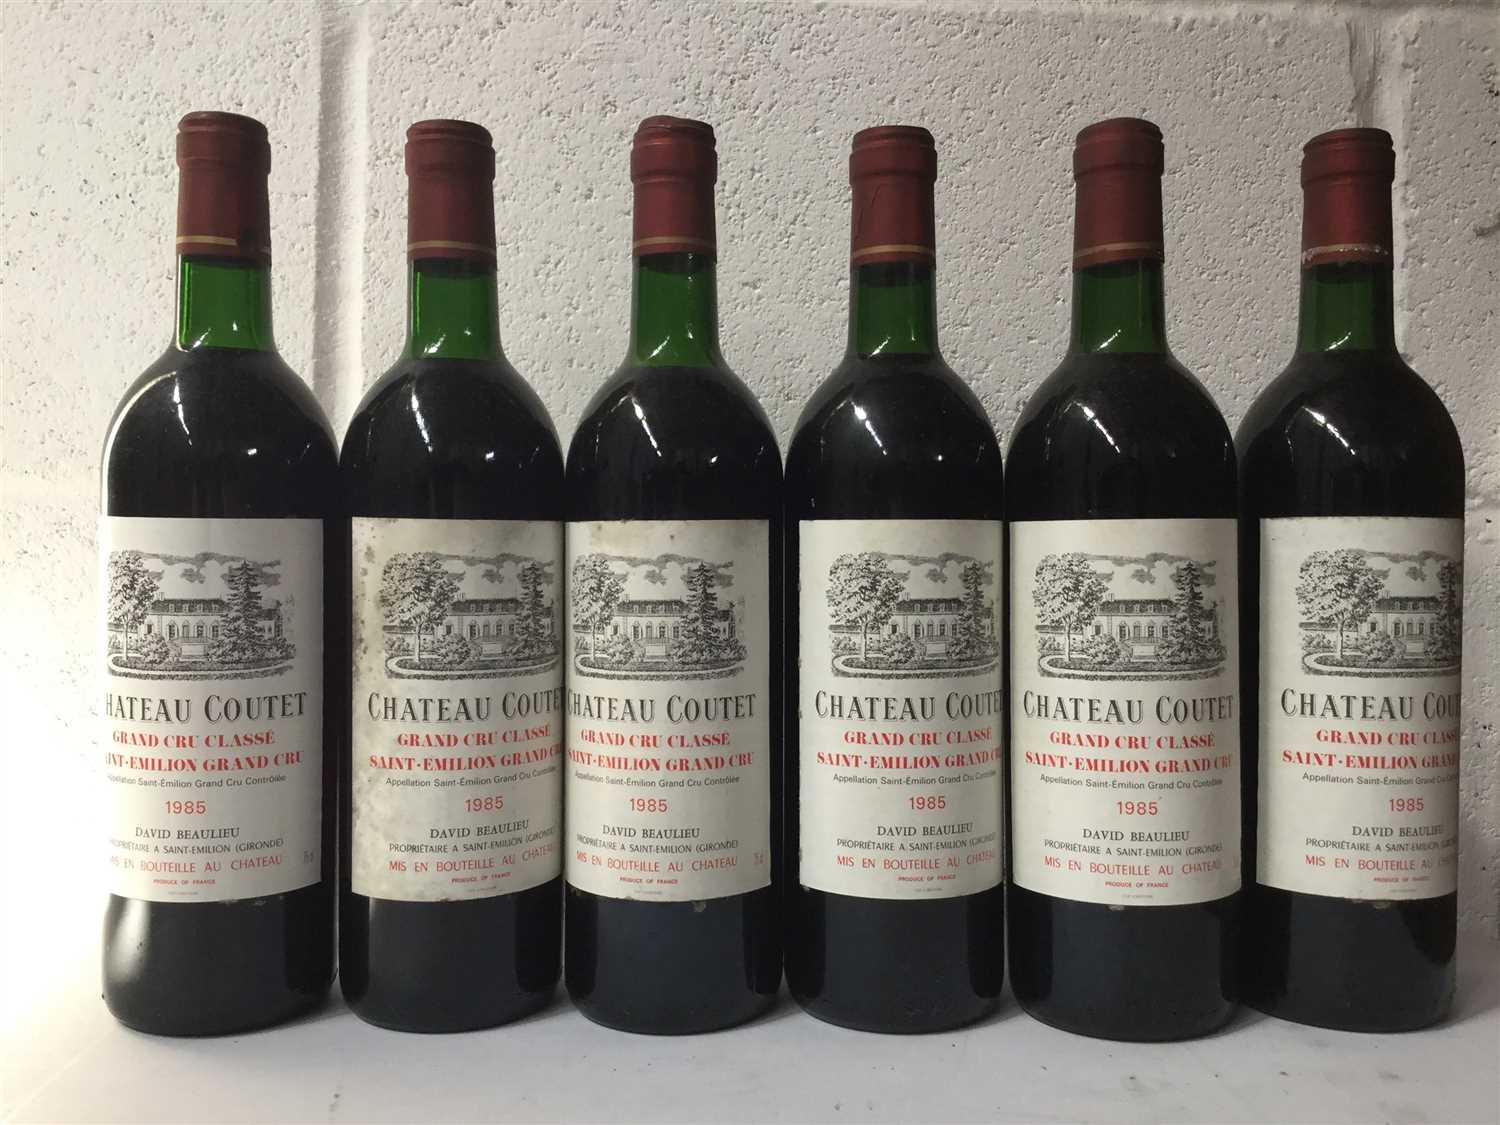 Lot 2024-SIX BOTTLES OF CHATEAU COUTET 1985 ST EMILLION